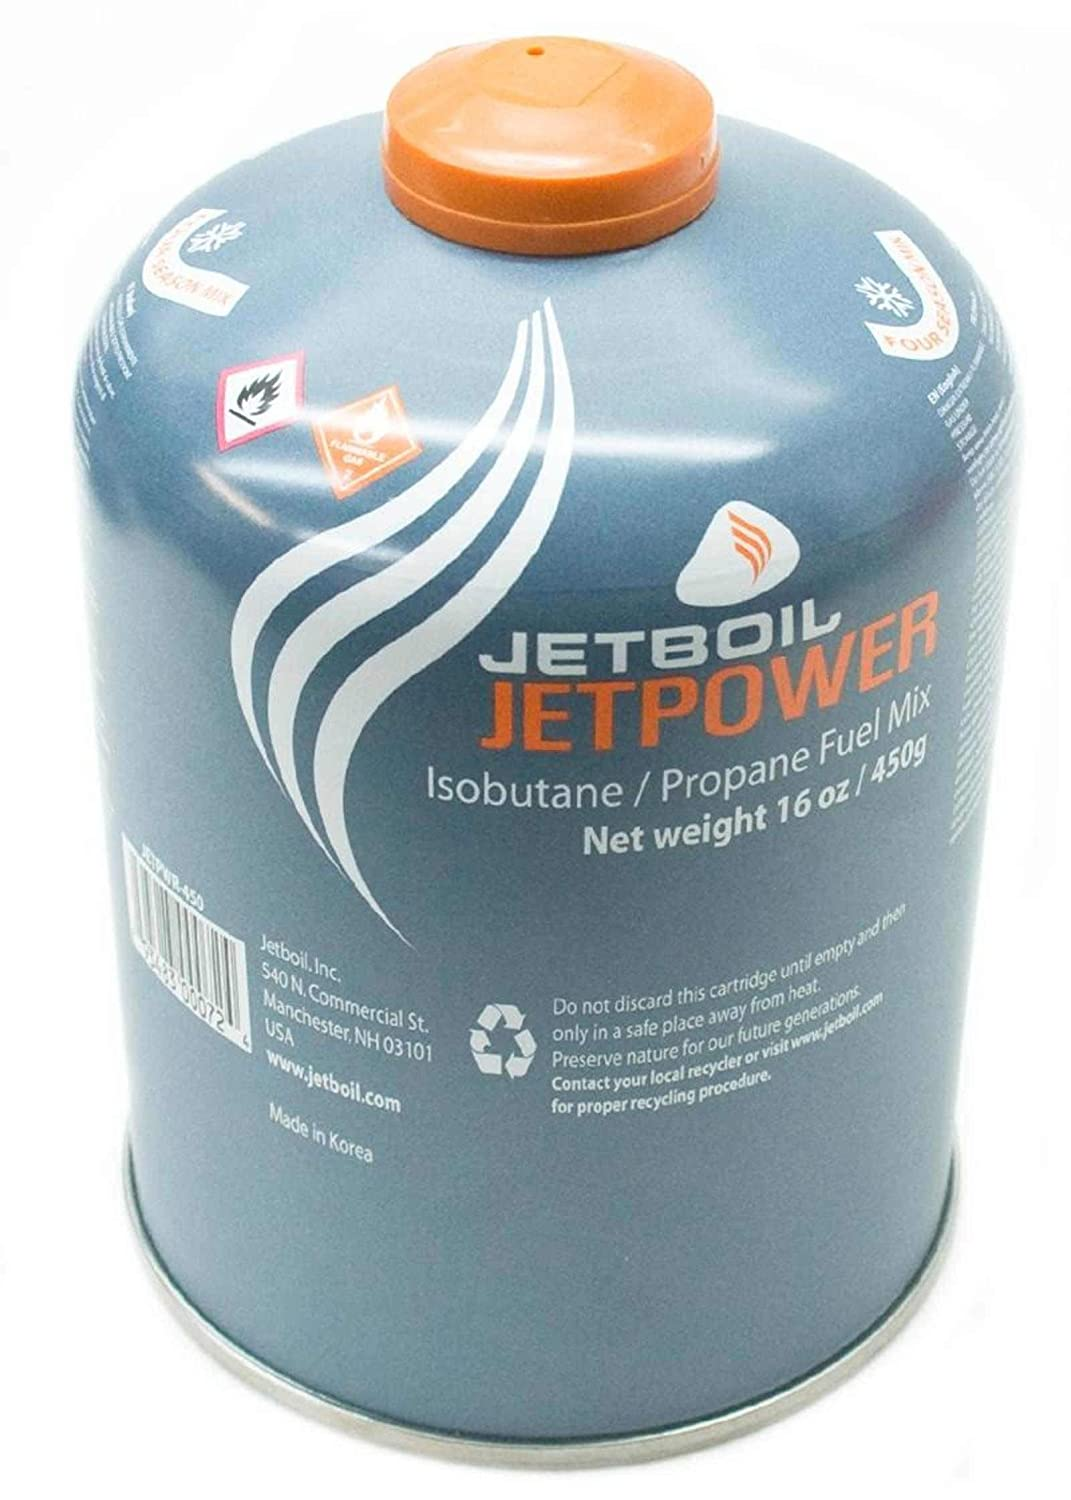 Jetboil Jetpower Gas/Fuel Canister (450g)